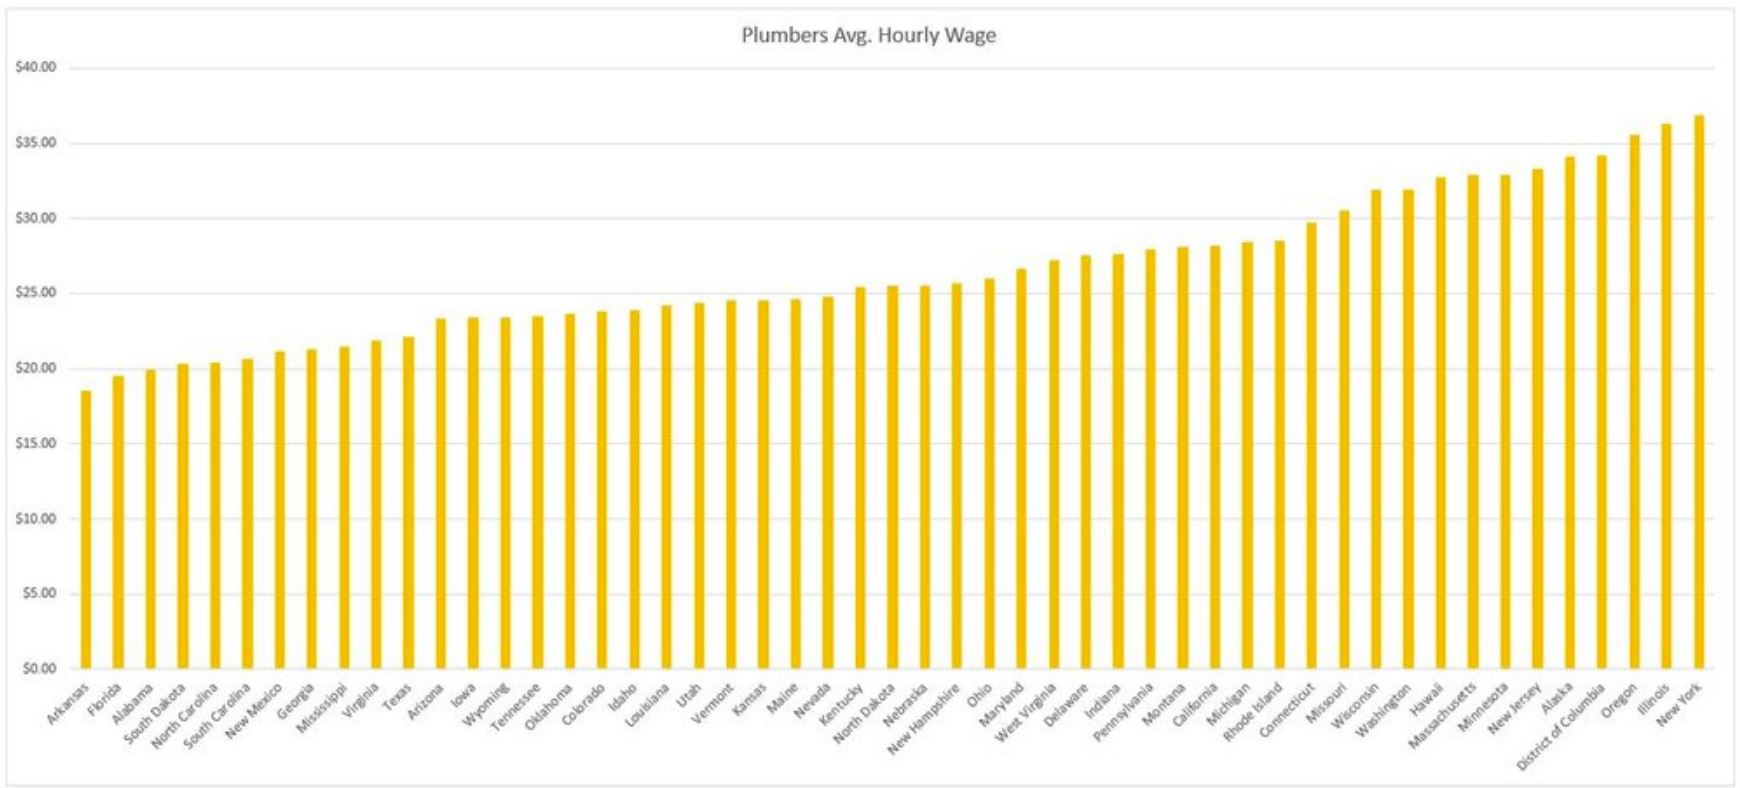 Plumbers Wage by State.JPG